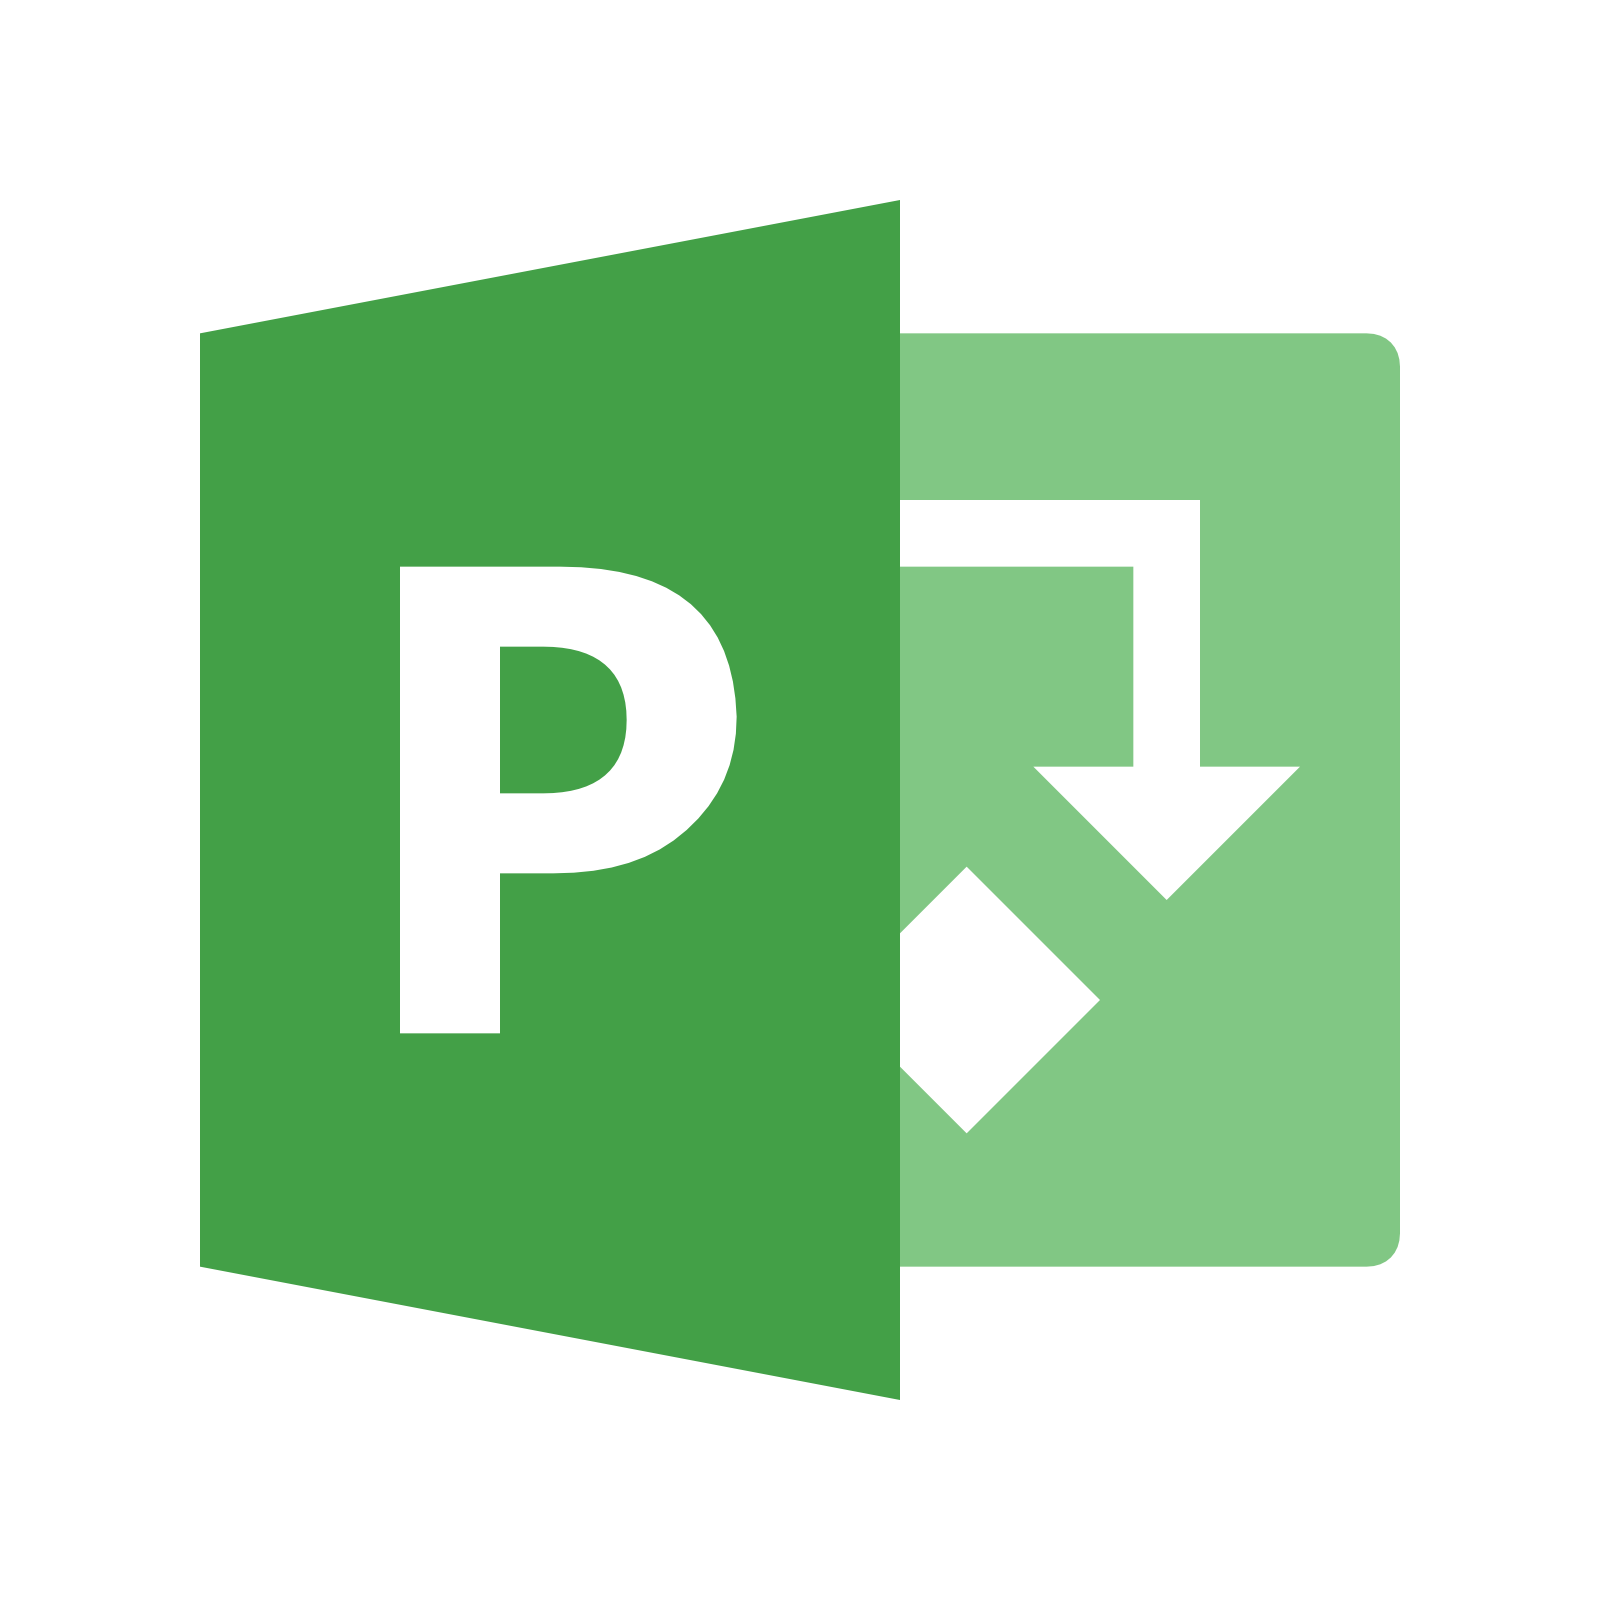 Microsoft Project icon - Logo A Project PNG